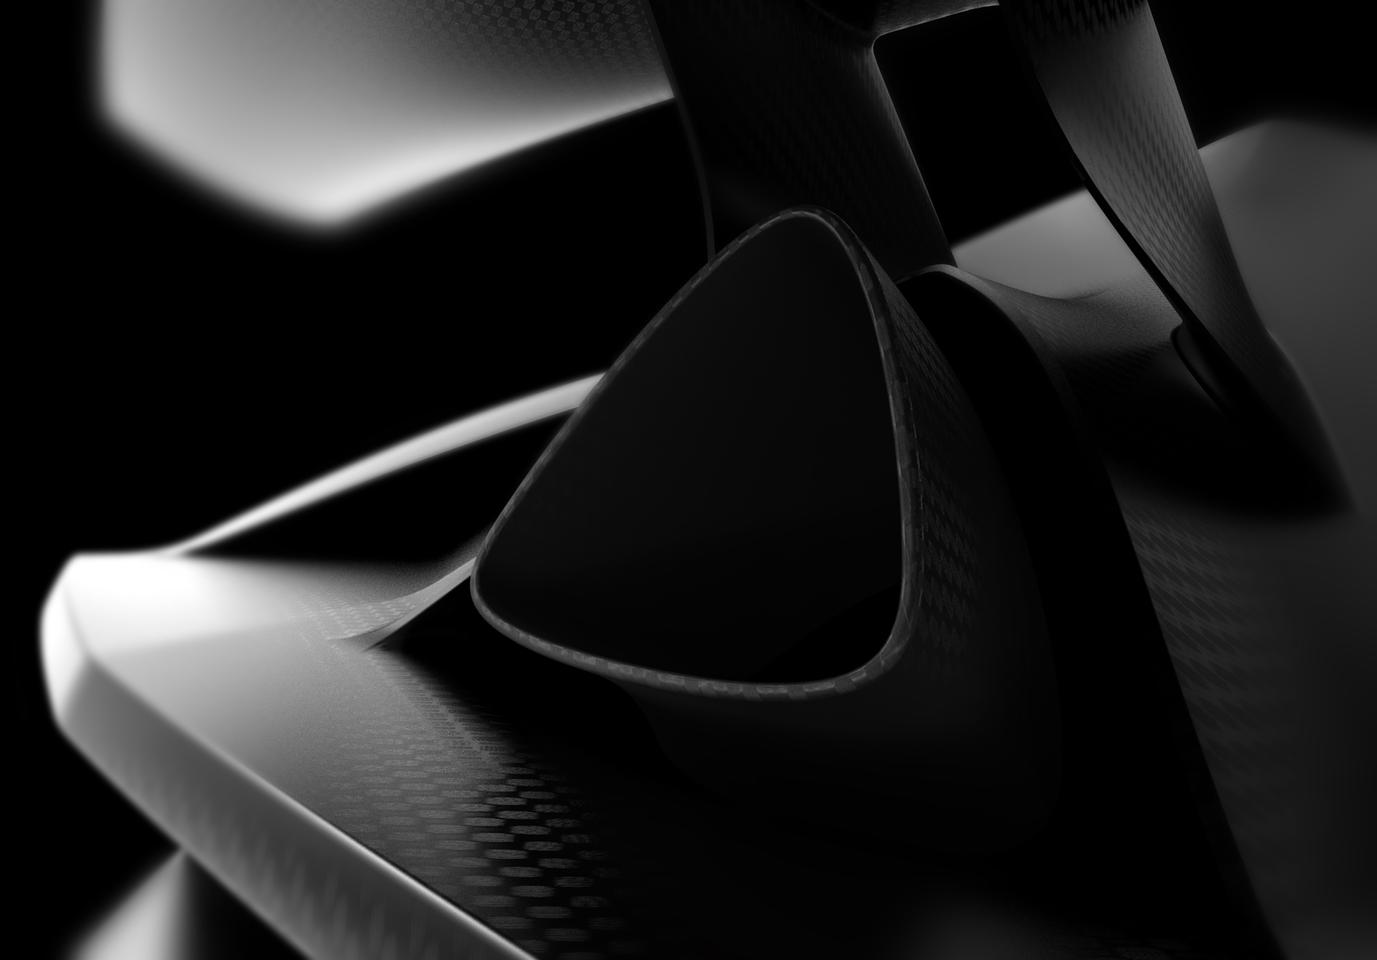 Carbon-fiber abounds on the Lamborghini Sesto Elemento